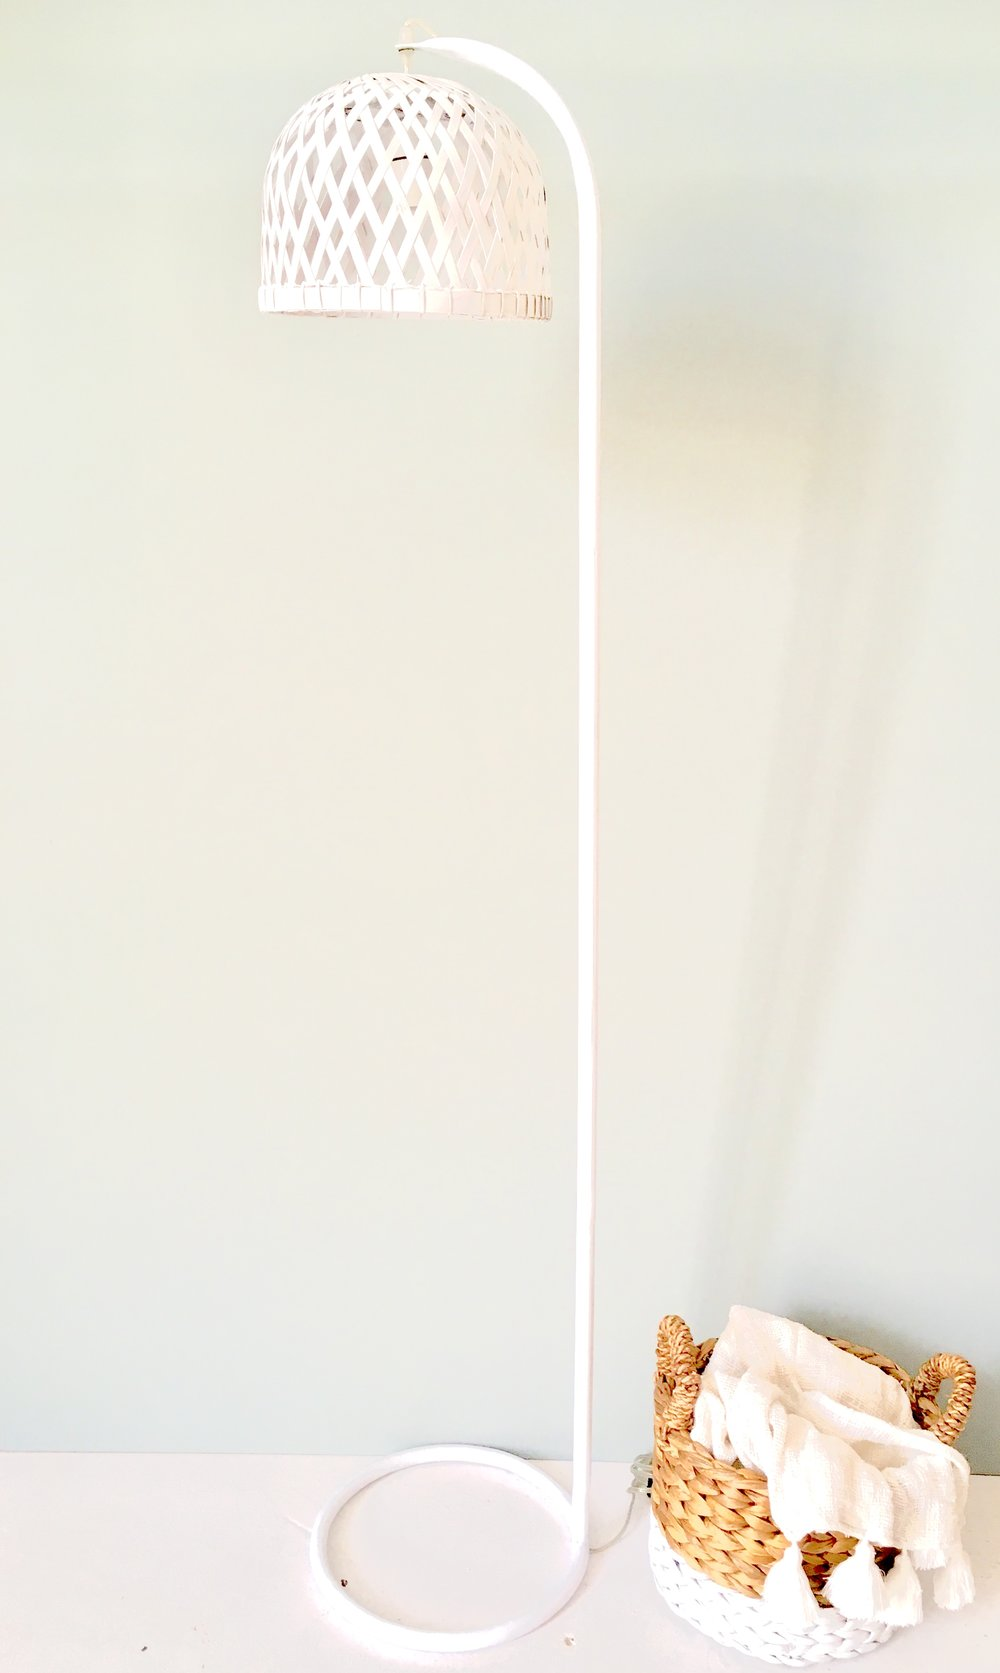 """<span style=""""font-family:Helvetica;letter-spacing:2px;font-size:10px;color:rgba(28,28,28,0.8);text-transform:uppercase;""""><b>ROOSTER FLOOR LAMP [WHITE]</b></span>"""